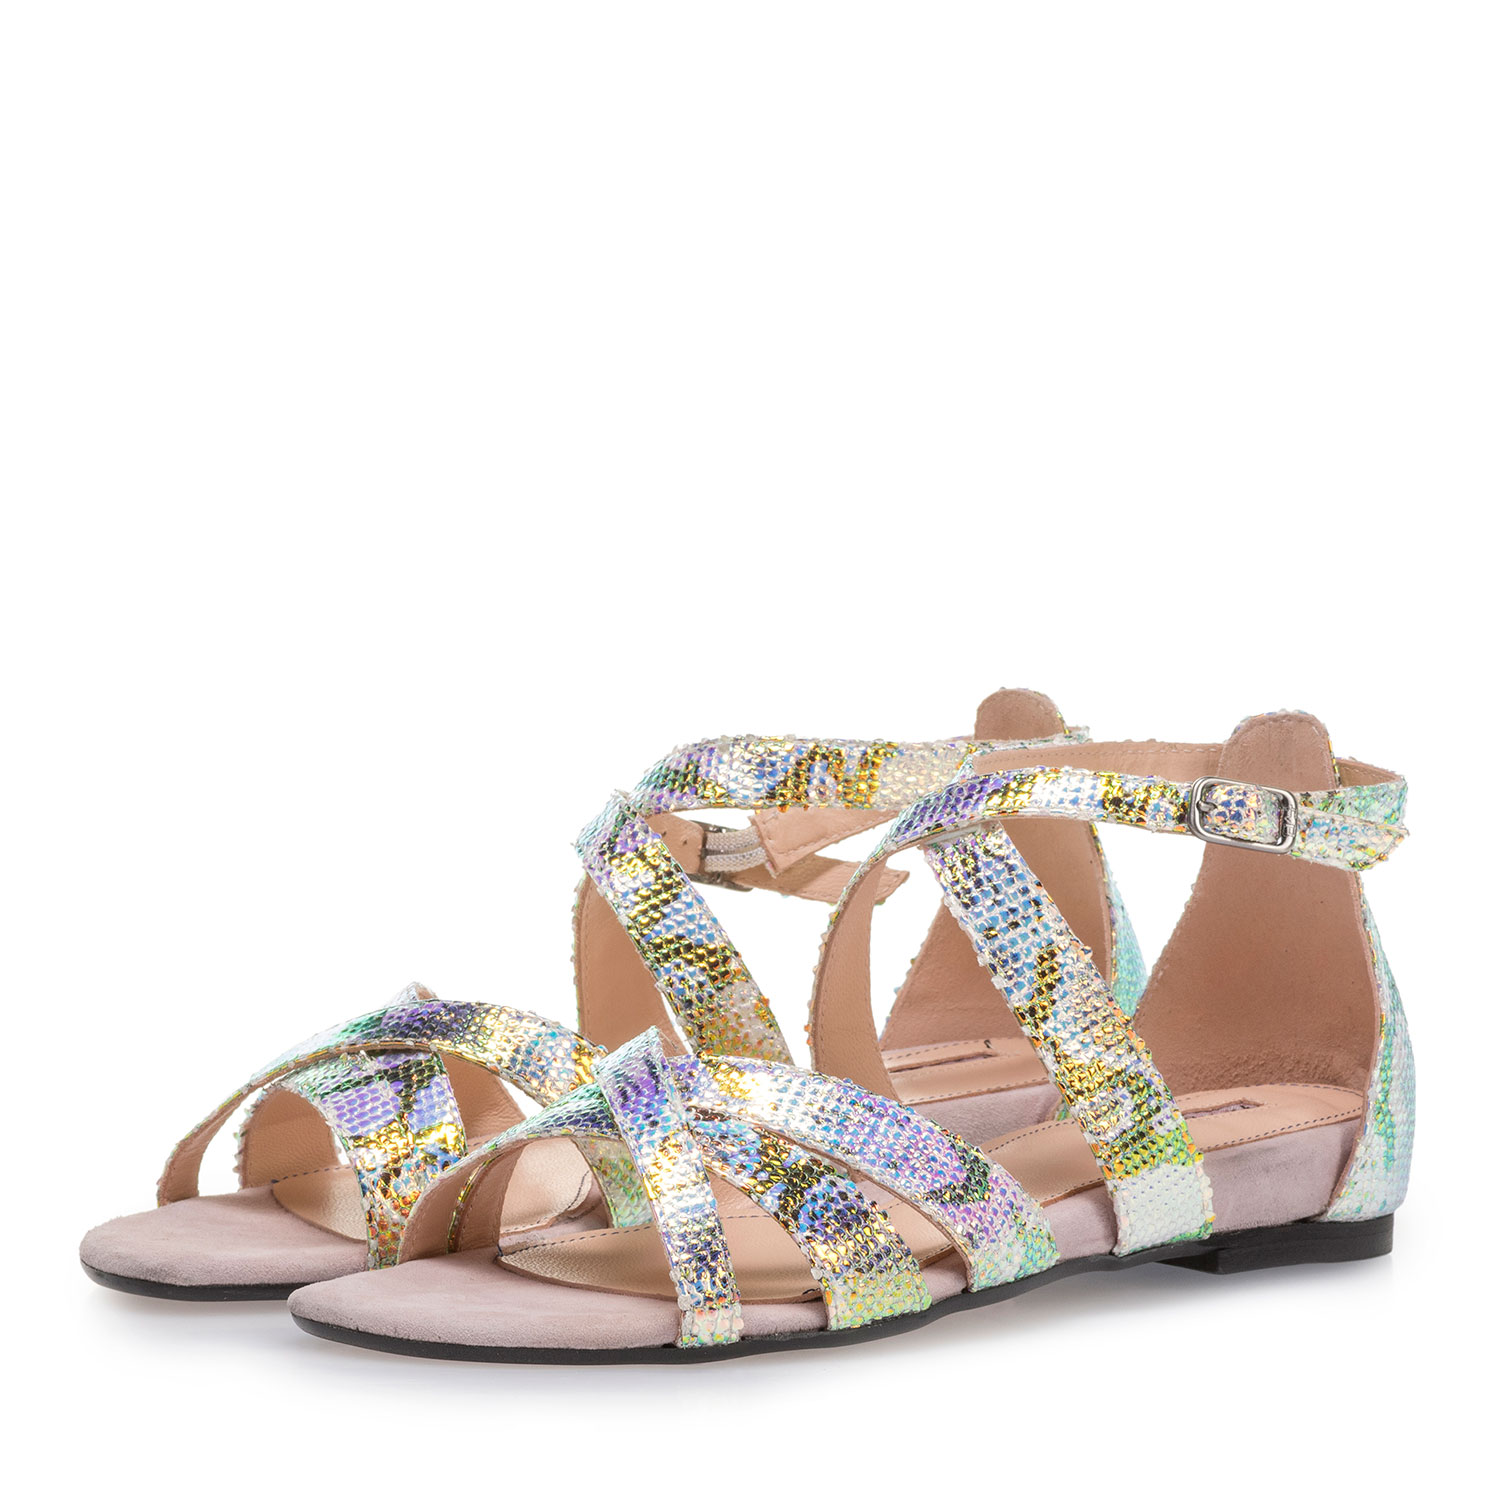 85956/00 - Leather sandals with green/gold metallic print